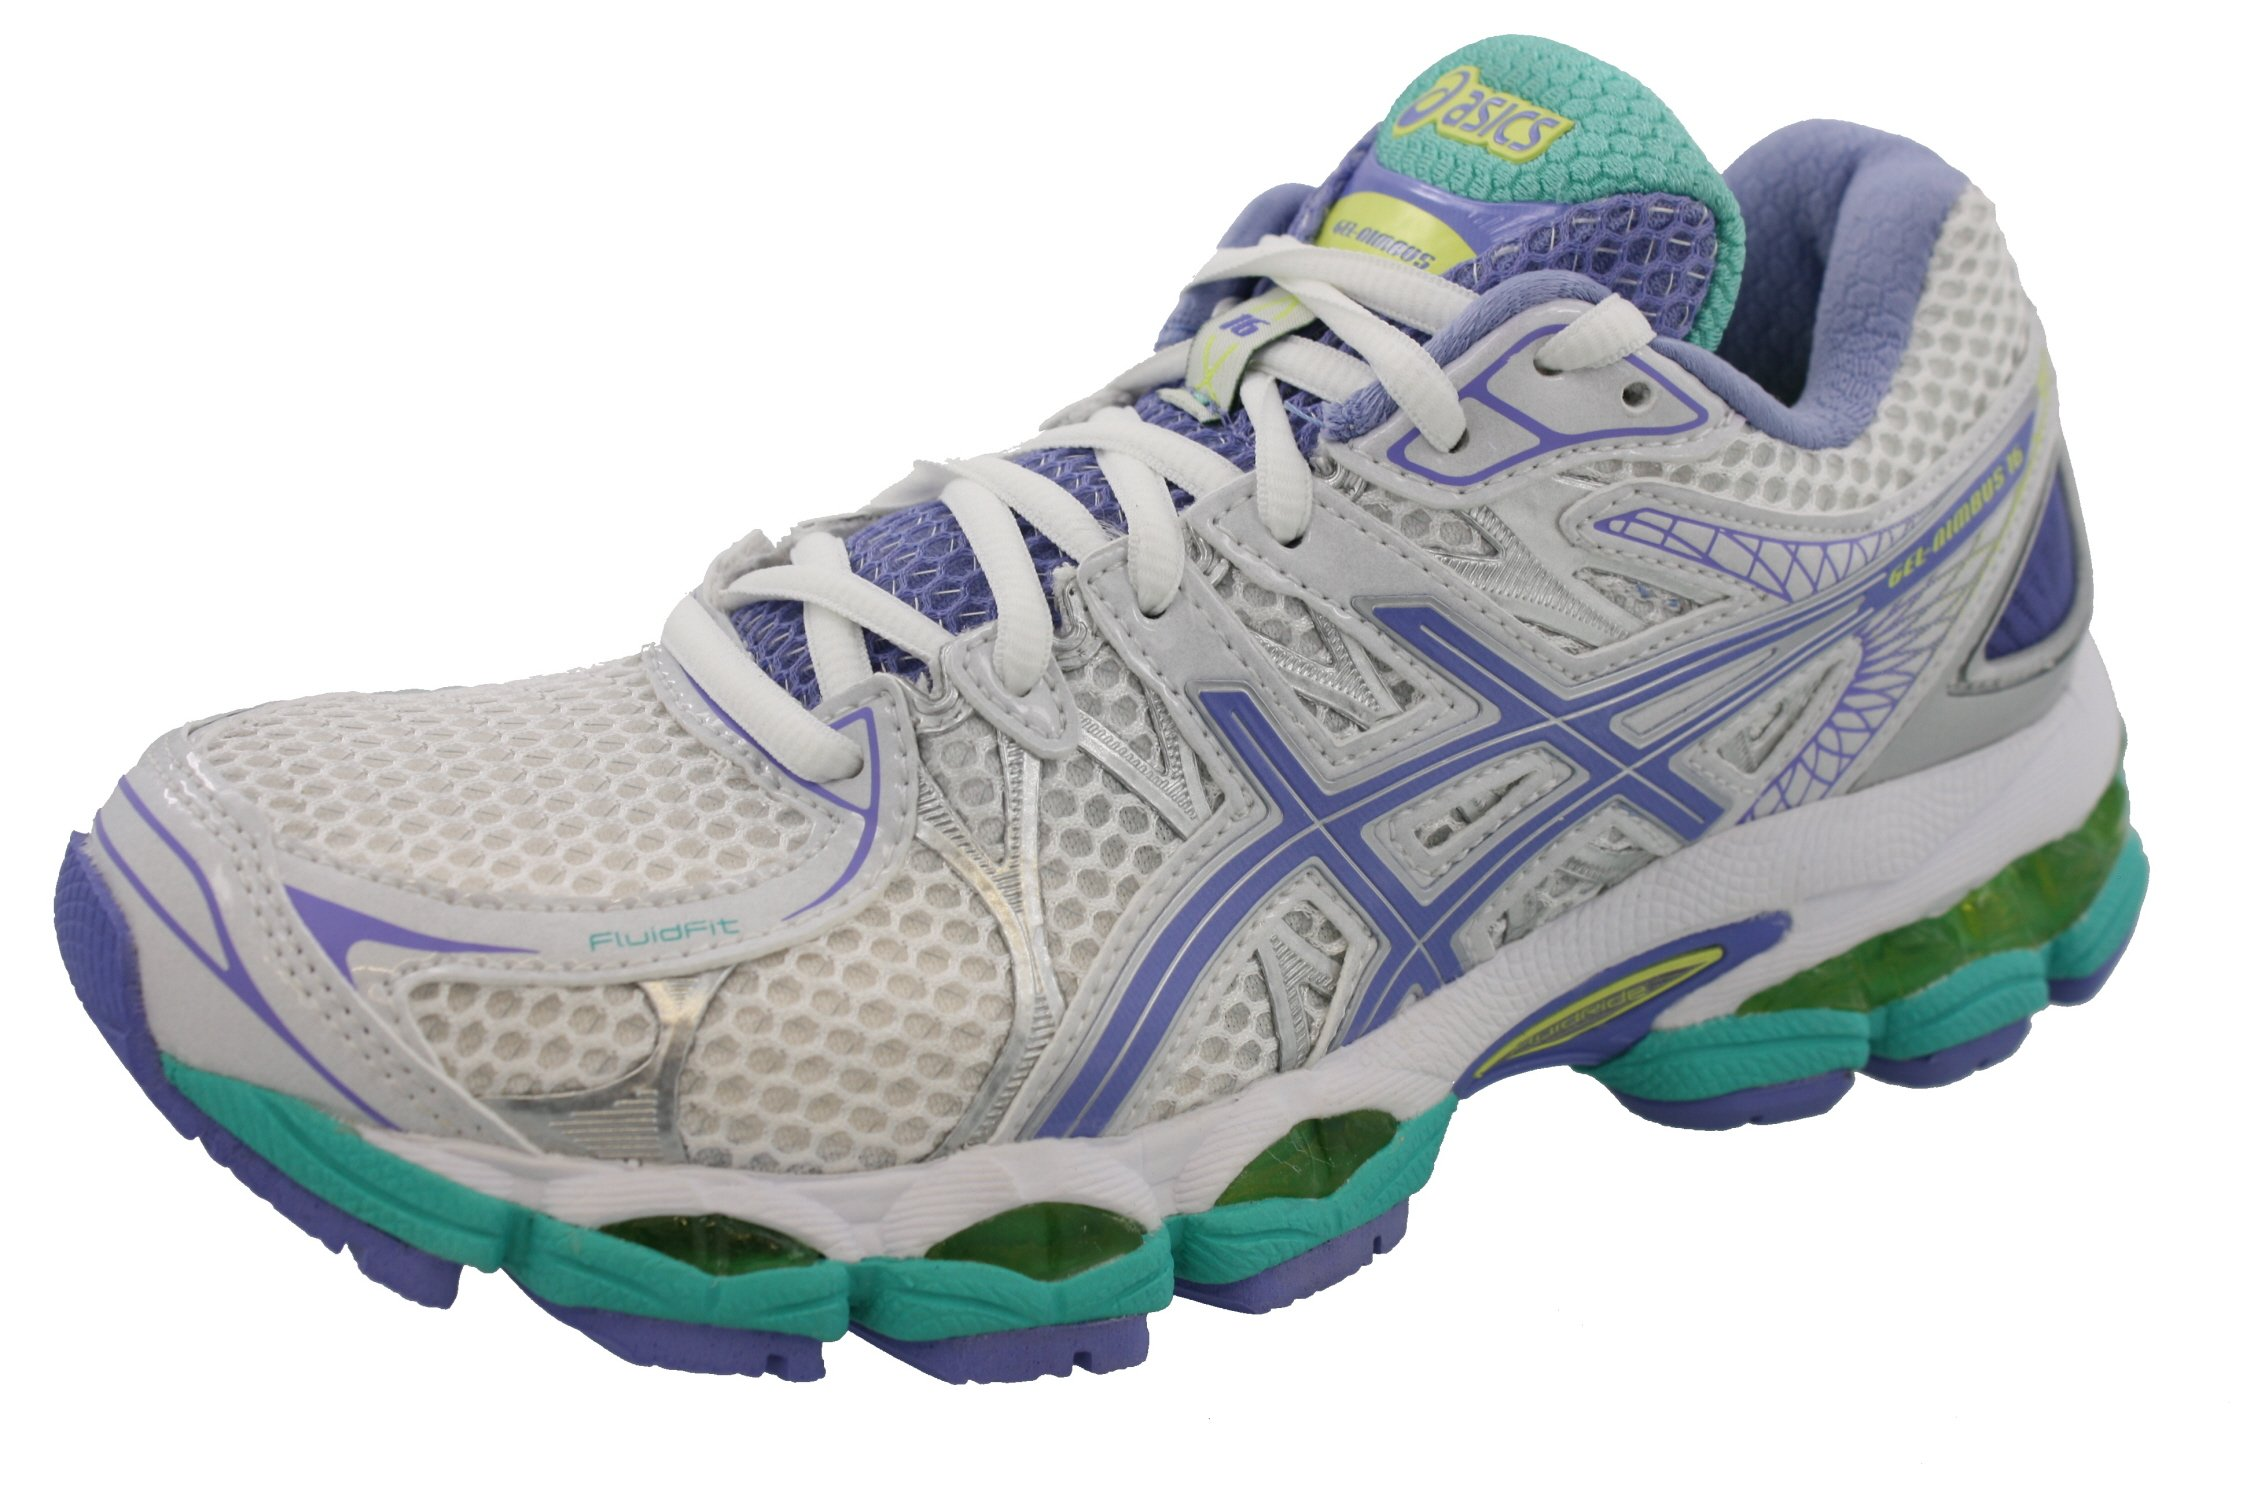 ASICS Women's GEL-Nimbus 16 (2A) Running Shoe,White/Periwinkle/Mint,6 2A US